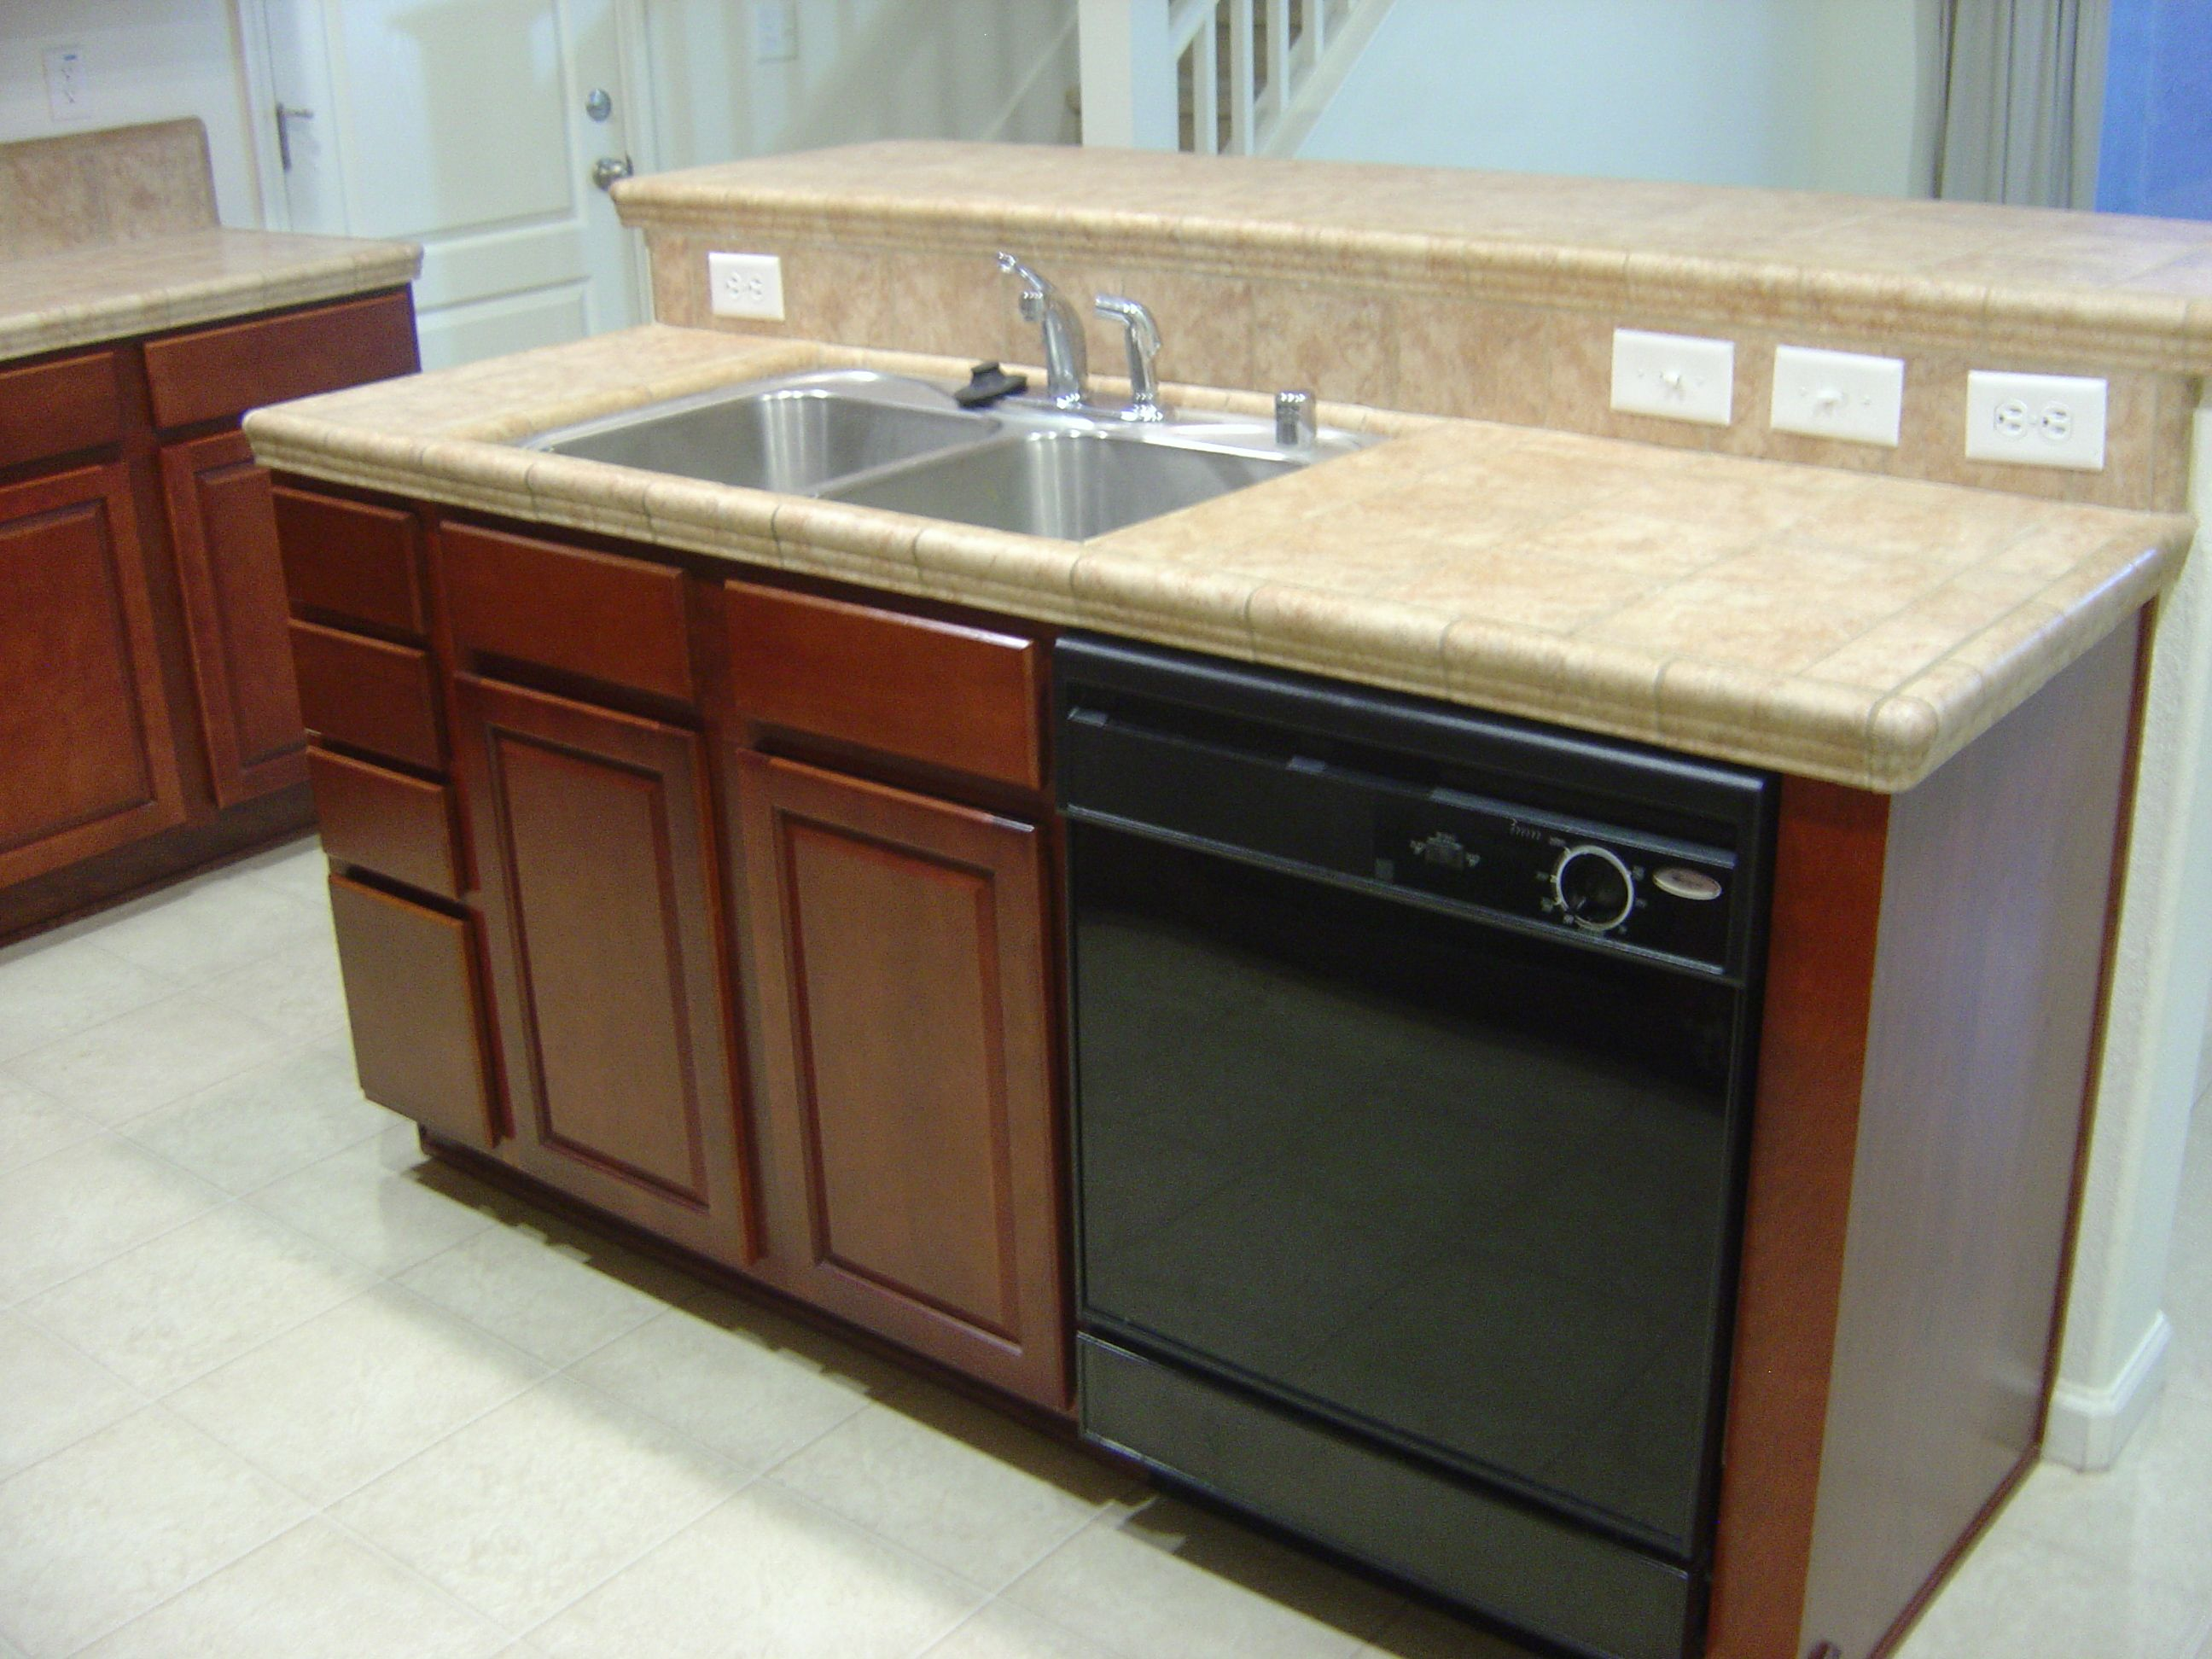 tiny house kitchen small kitchen sinks best images about Tiny house kitchen on Pinterest Tiny homes on wheels Tiny house storage and Little kitchen